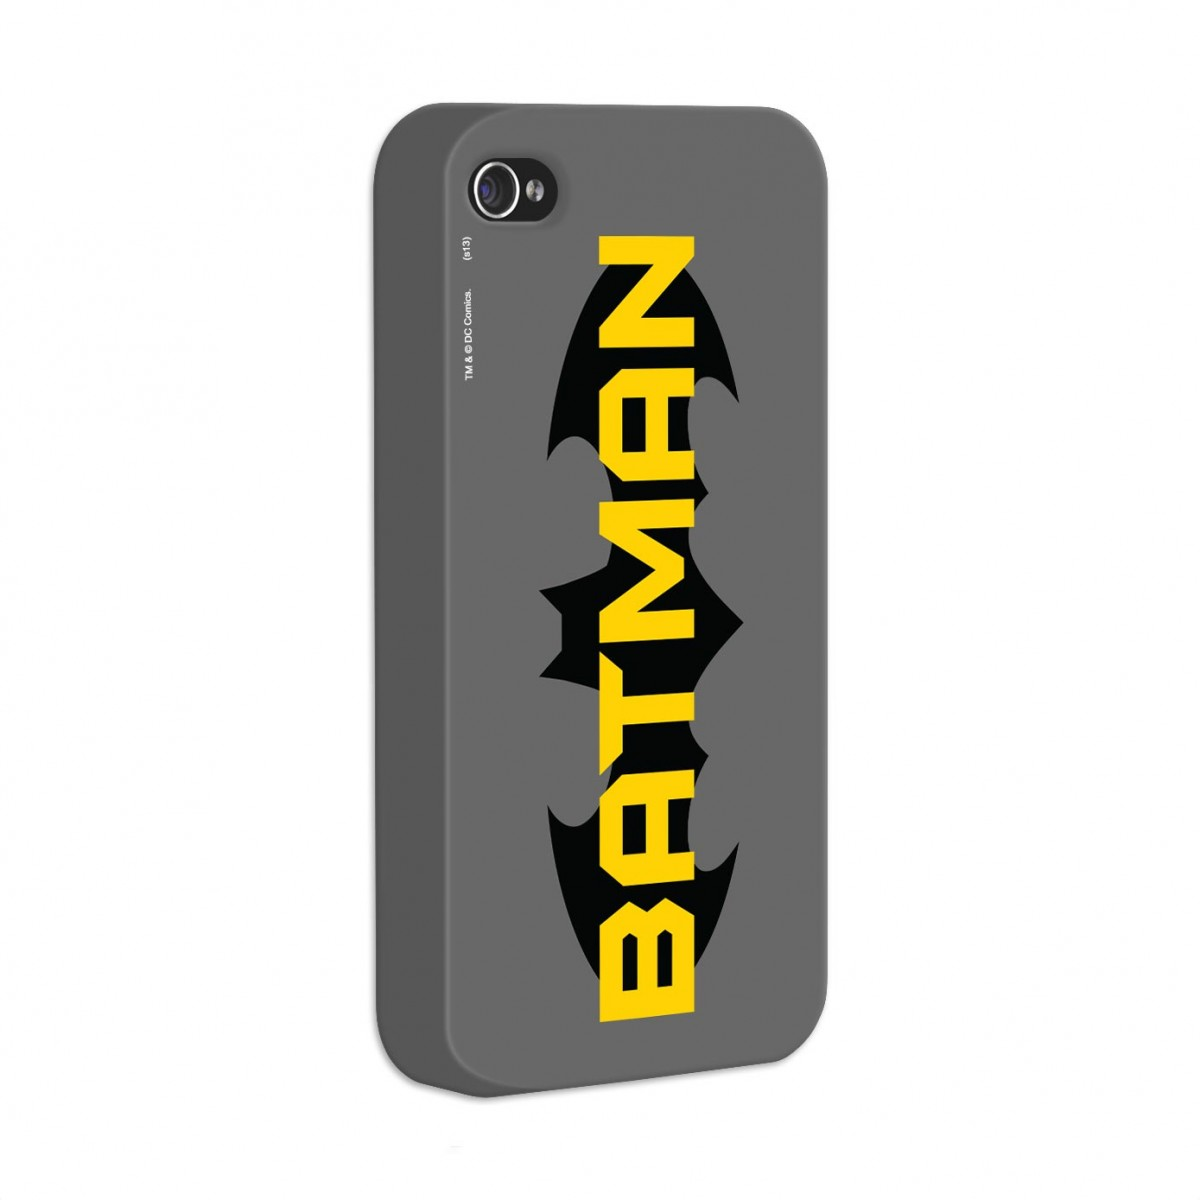 Capa de iPhone 4/4S Batman - Logo Batman 1998